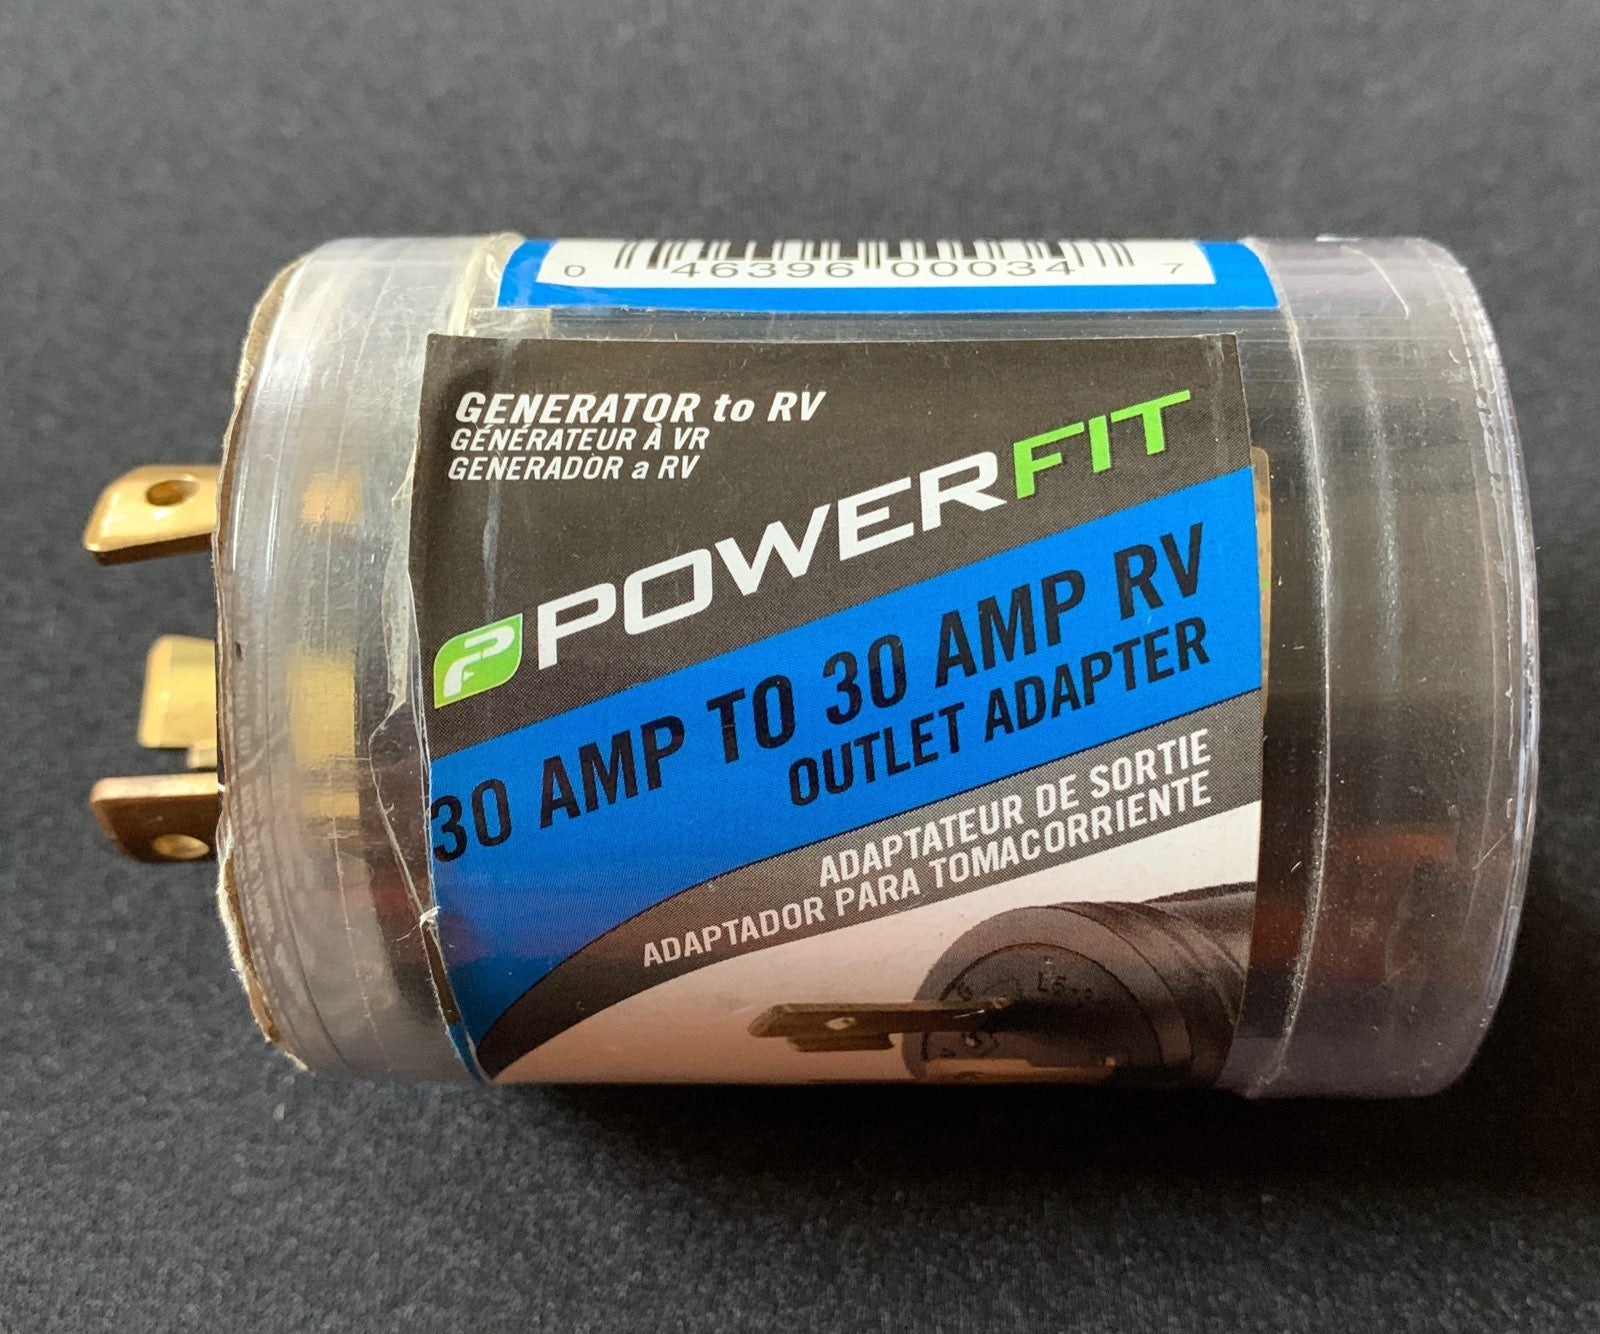 PowerFit 30amp to 30amp RV adapter